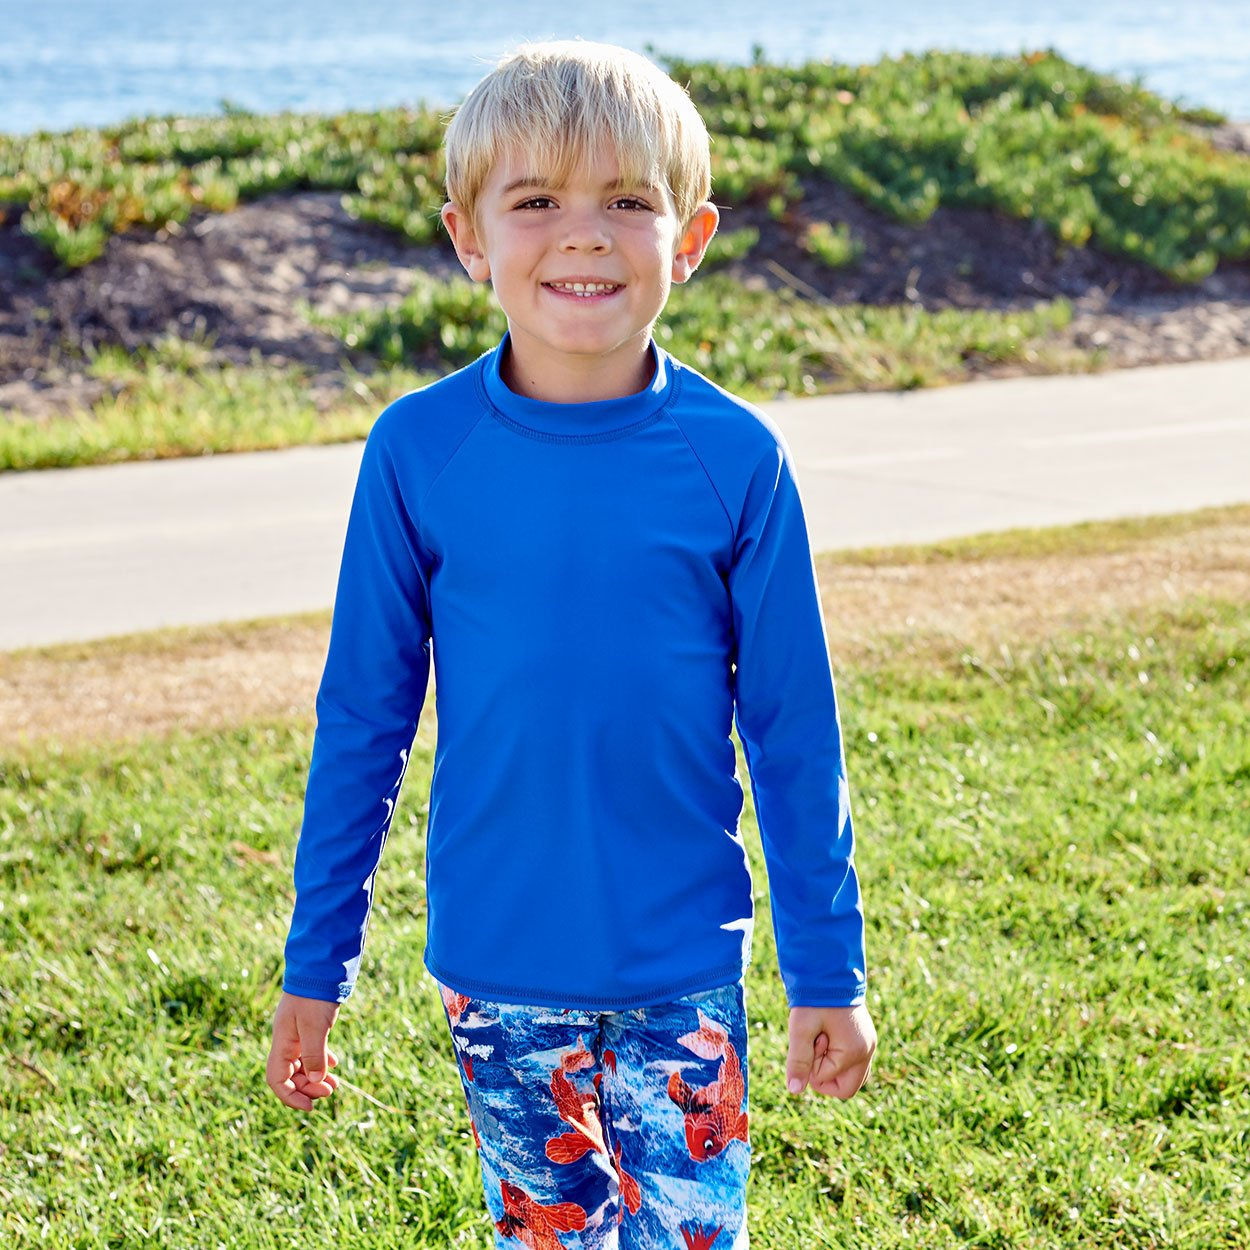 Royal Blue Kids Long Sleeve Rash Guard Top Upf50 Boys Girls Unisex Size 2 12 Blonde Boy Smiling by the Ocean Sunpoplife